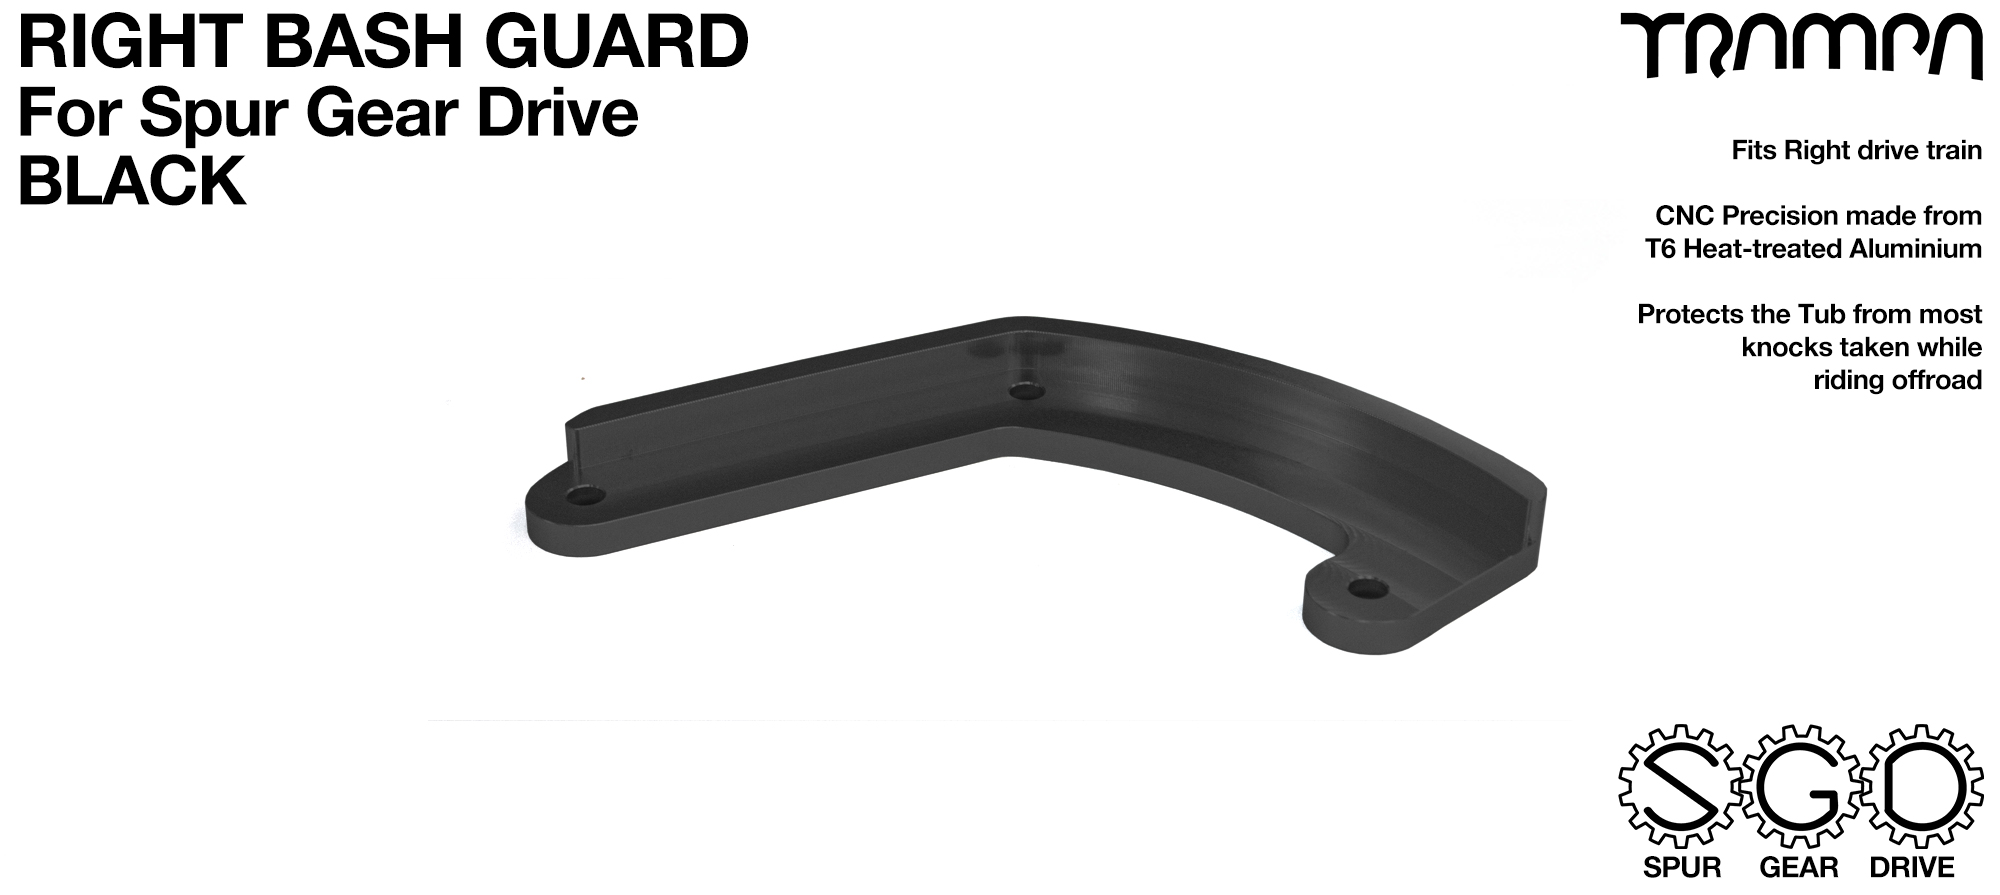 MkII Spur Gear Drive Bash Guard - RIGHT Side - BLACK